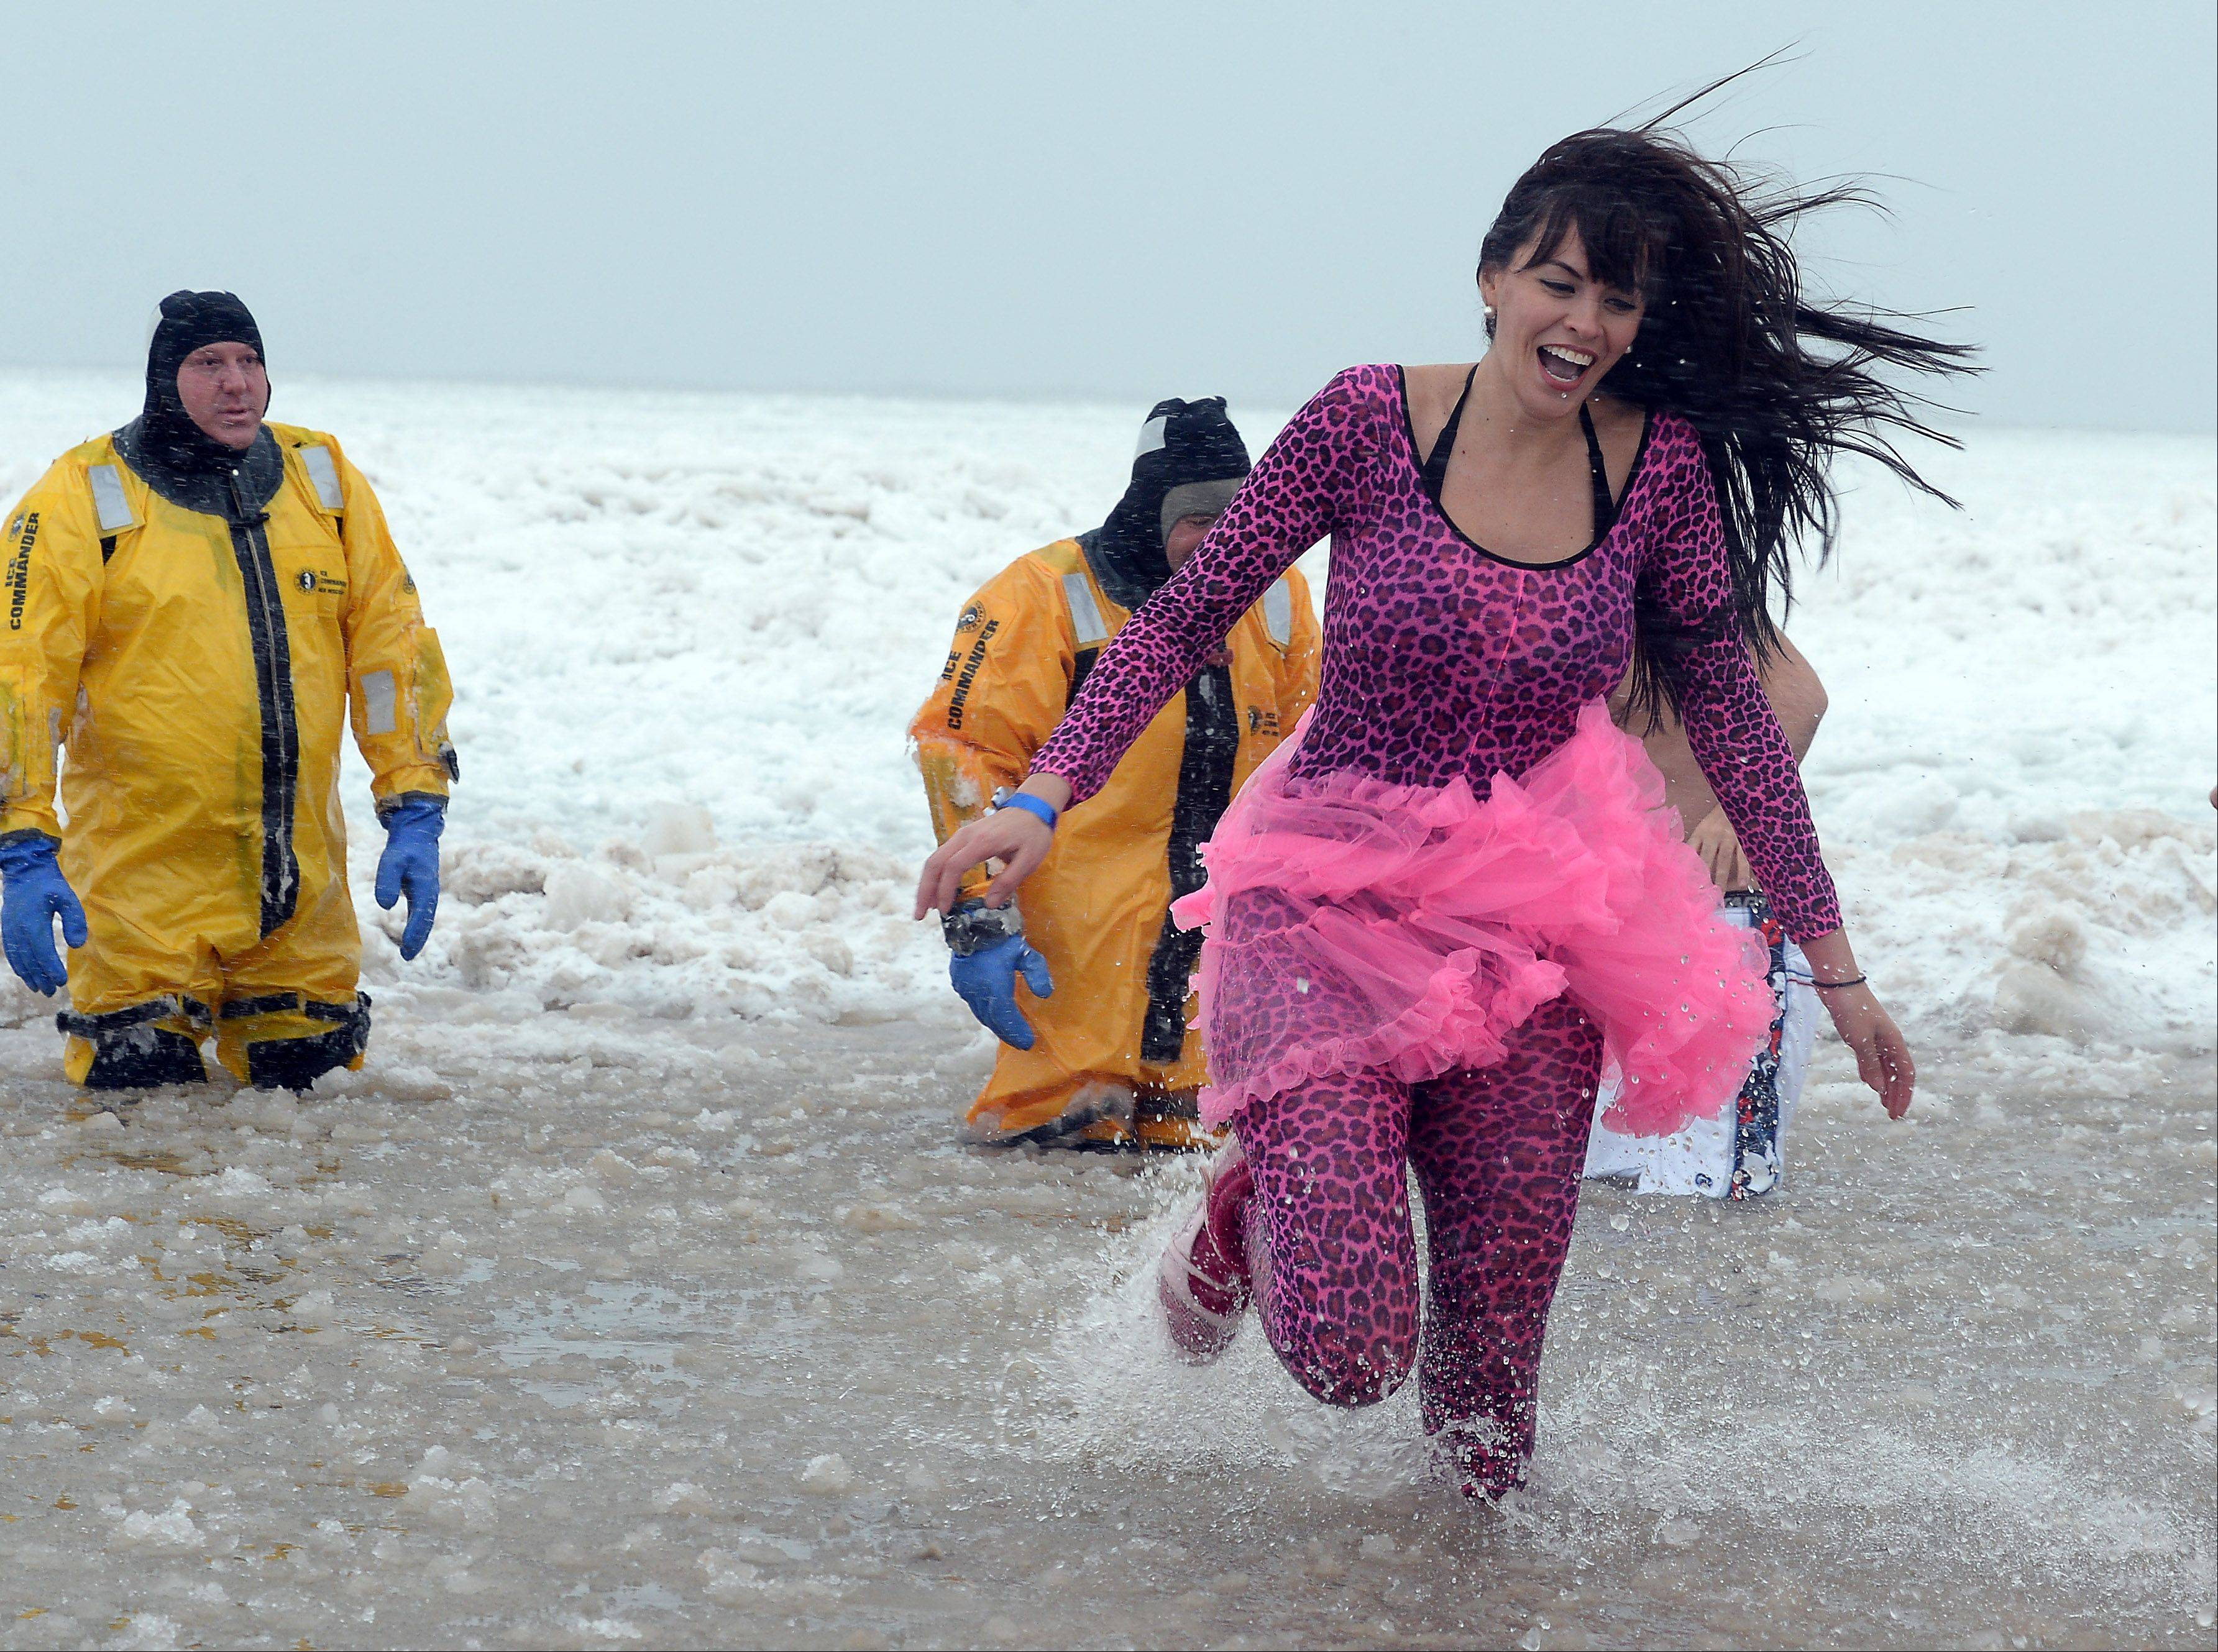 Anel Garza, of Waukegan, dons her tutu costume as she makes a quick run through the freezing water celebrating the new year during the 15th Annual Polar Bear Plunge at Waukegan Municipal Beach.